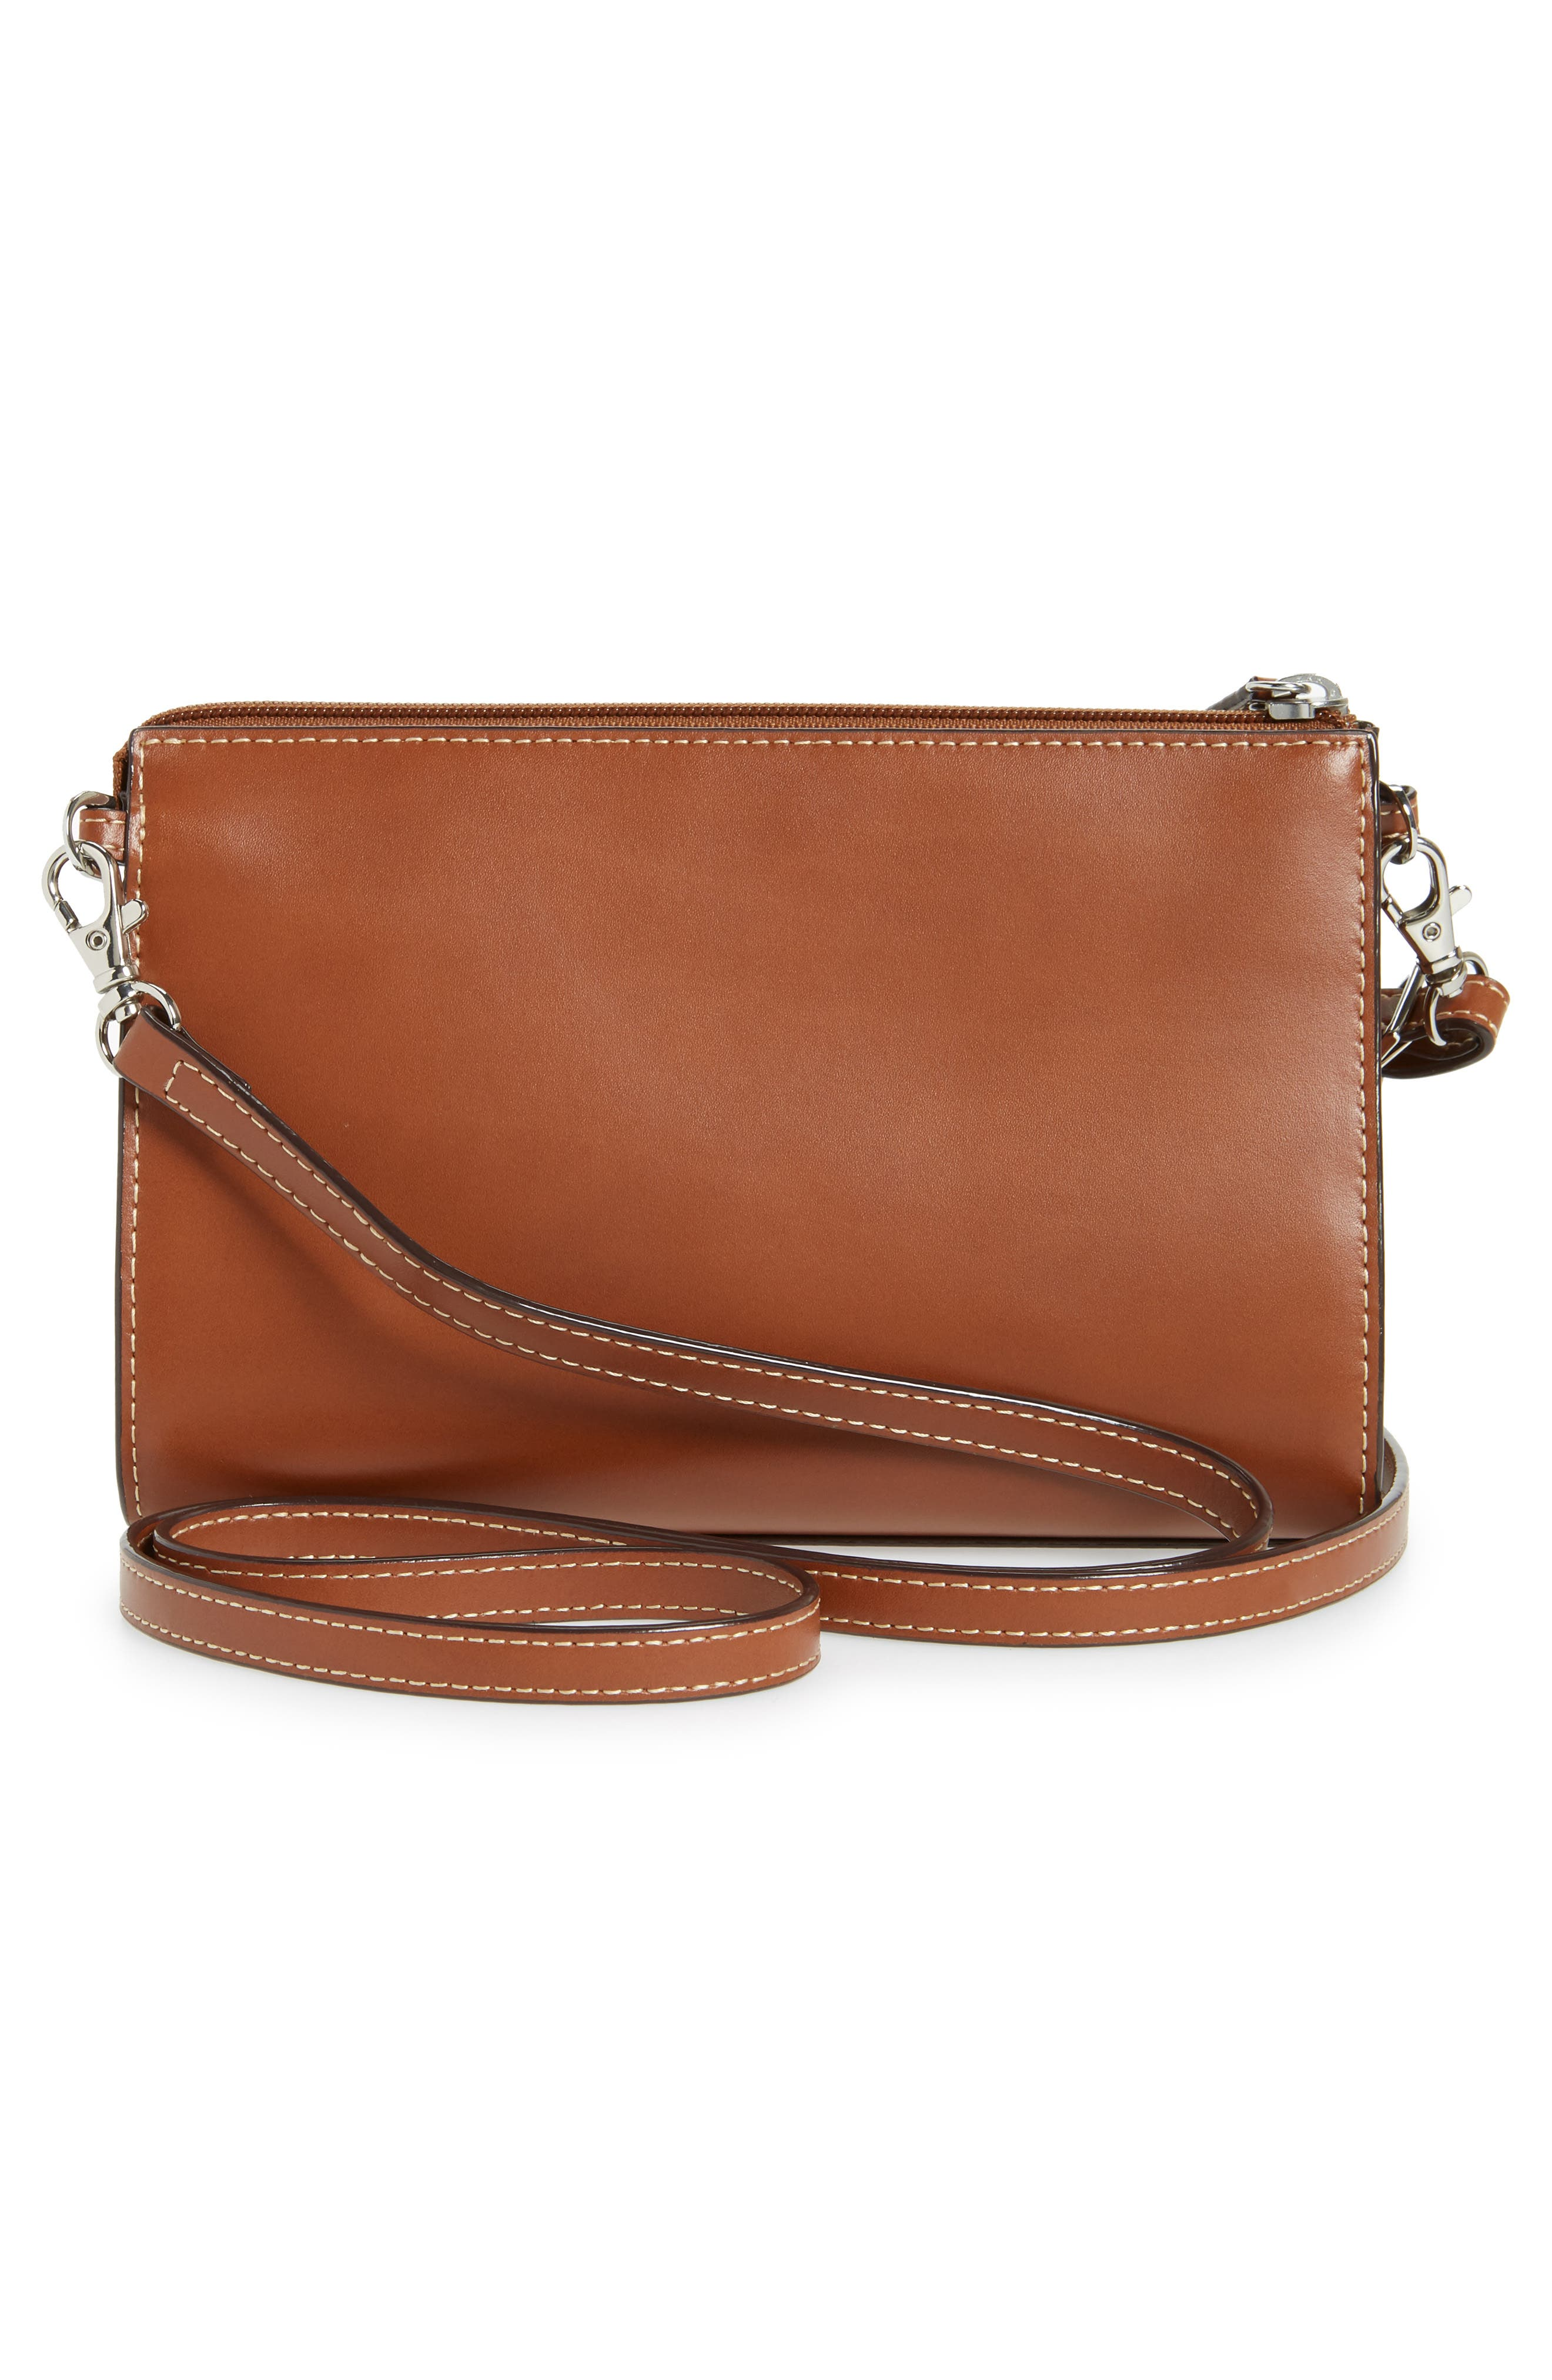 Audrey Under Lock & Key Vicky Convertible Leather Crossbody Bag,                             Alternate thumbnail 3, color,                             Sequoia/ Papaya